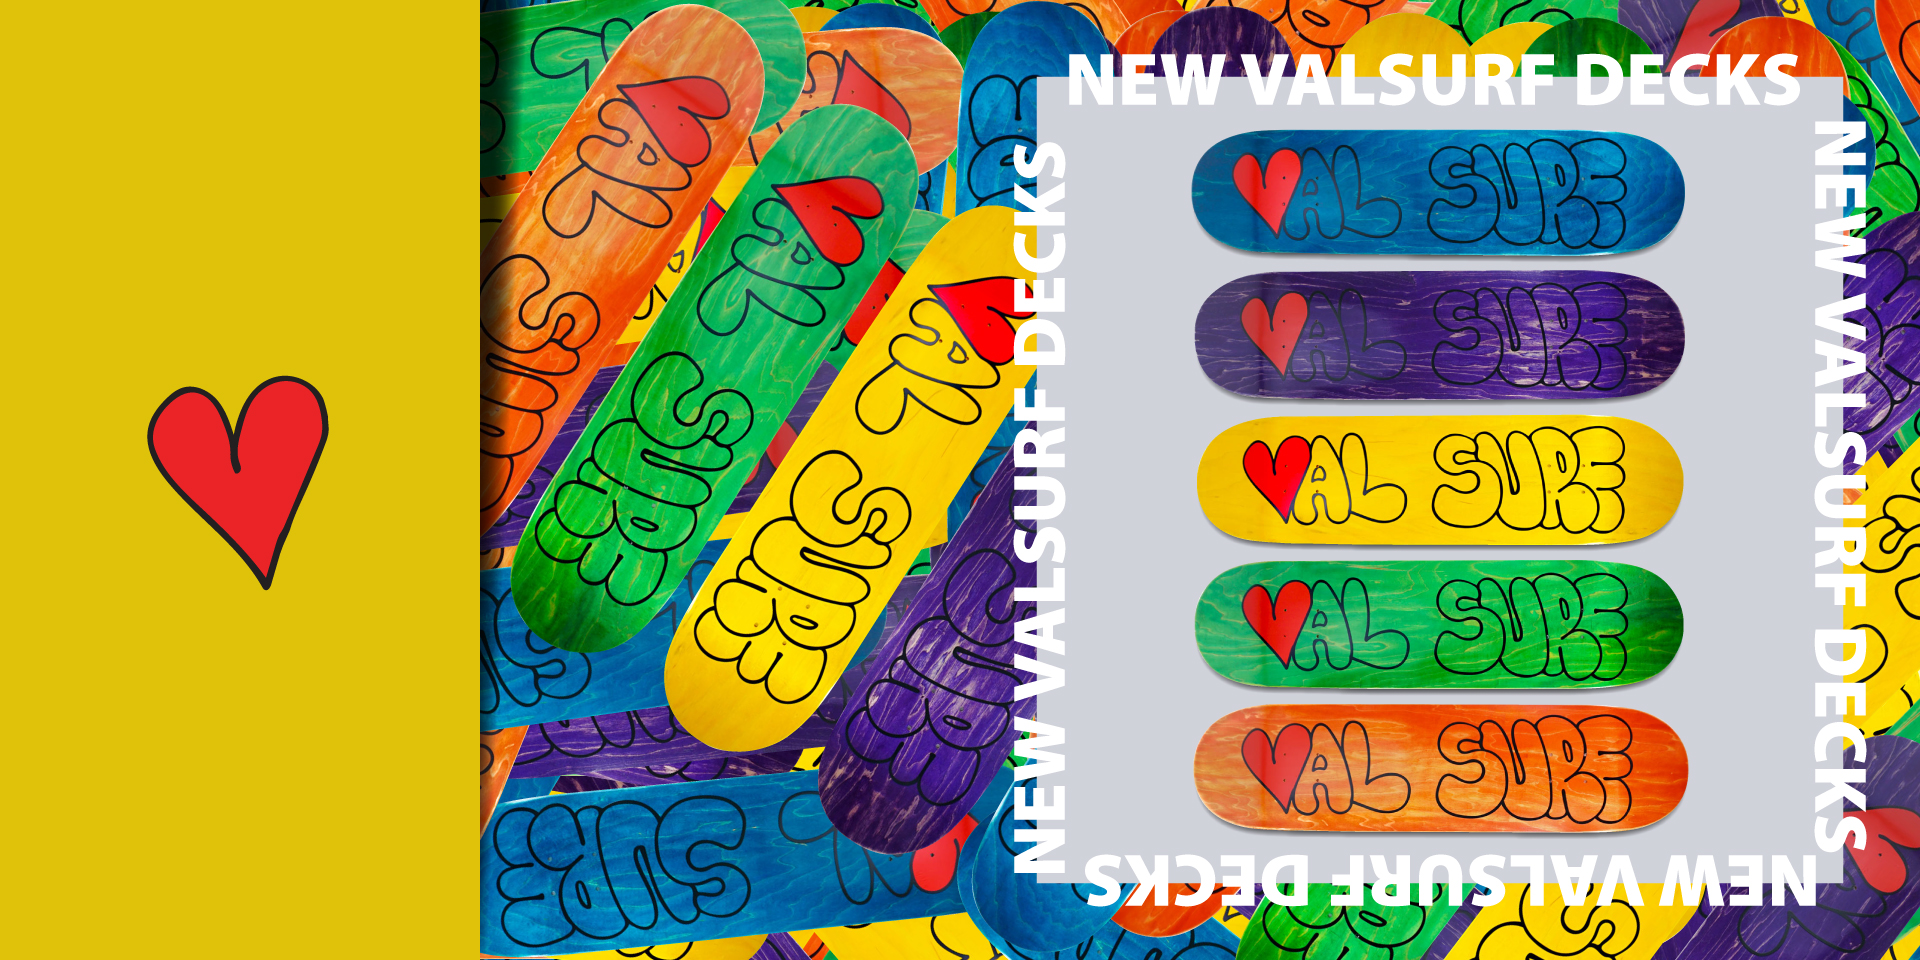 New Valsurf decks in blue, purple, yellow, green, and orange. Collage of colorful val surf heart decks.